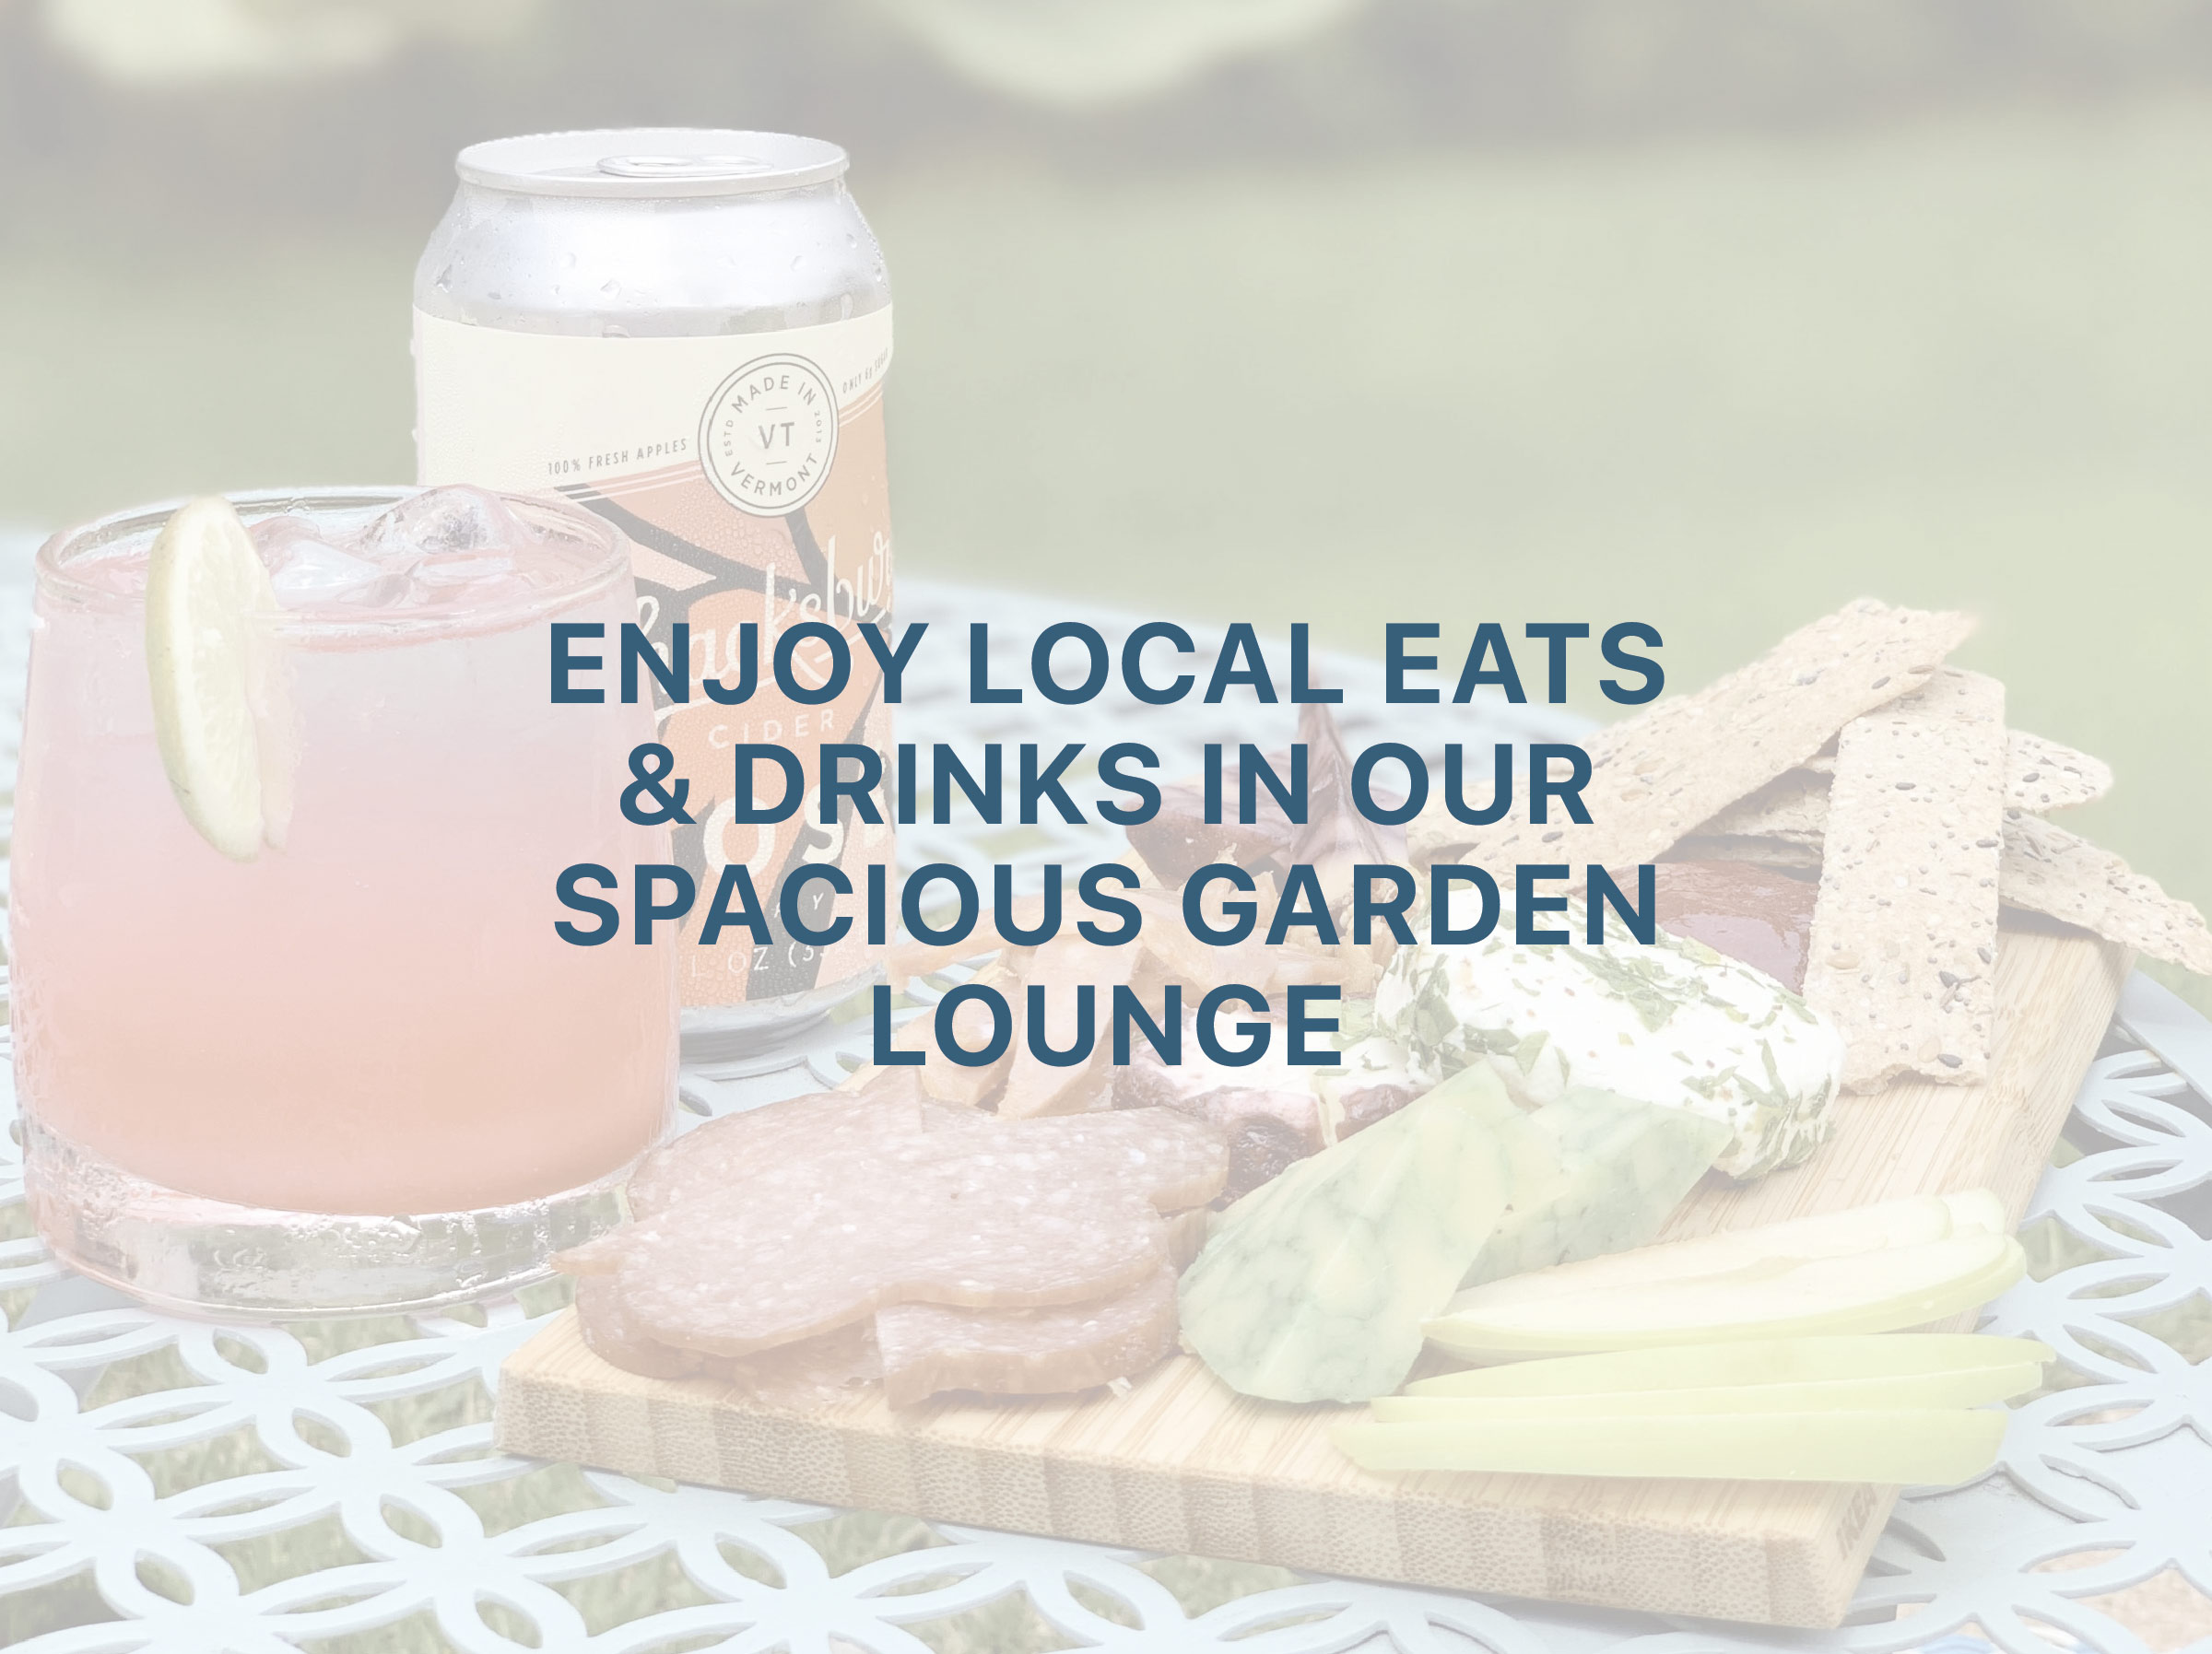 Enjoy Local Eats & Drinks in our Spacious Garden Lounge